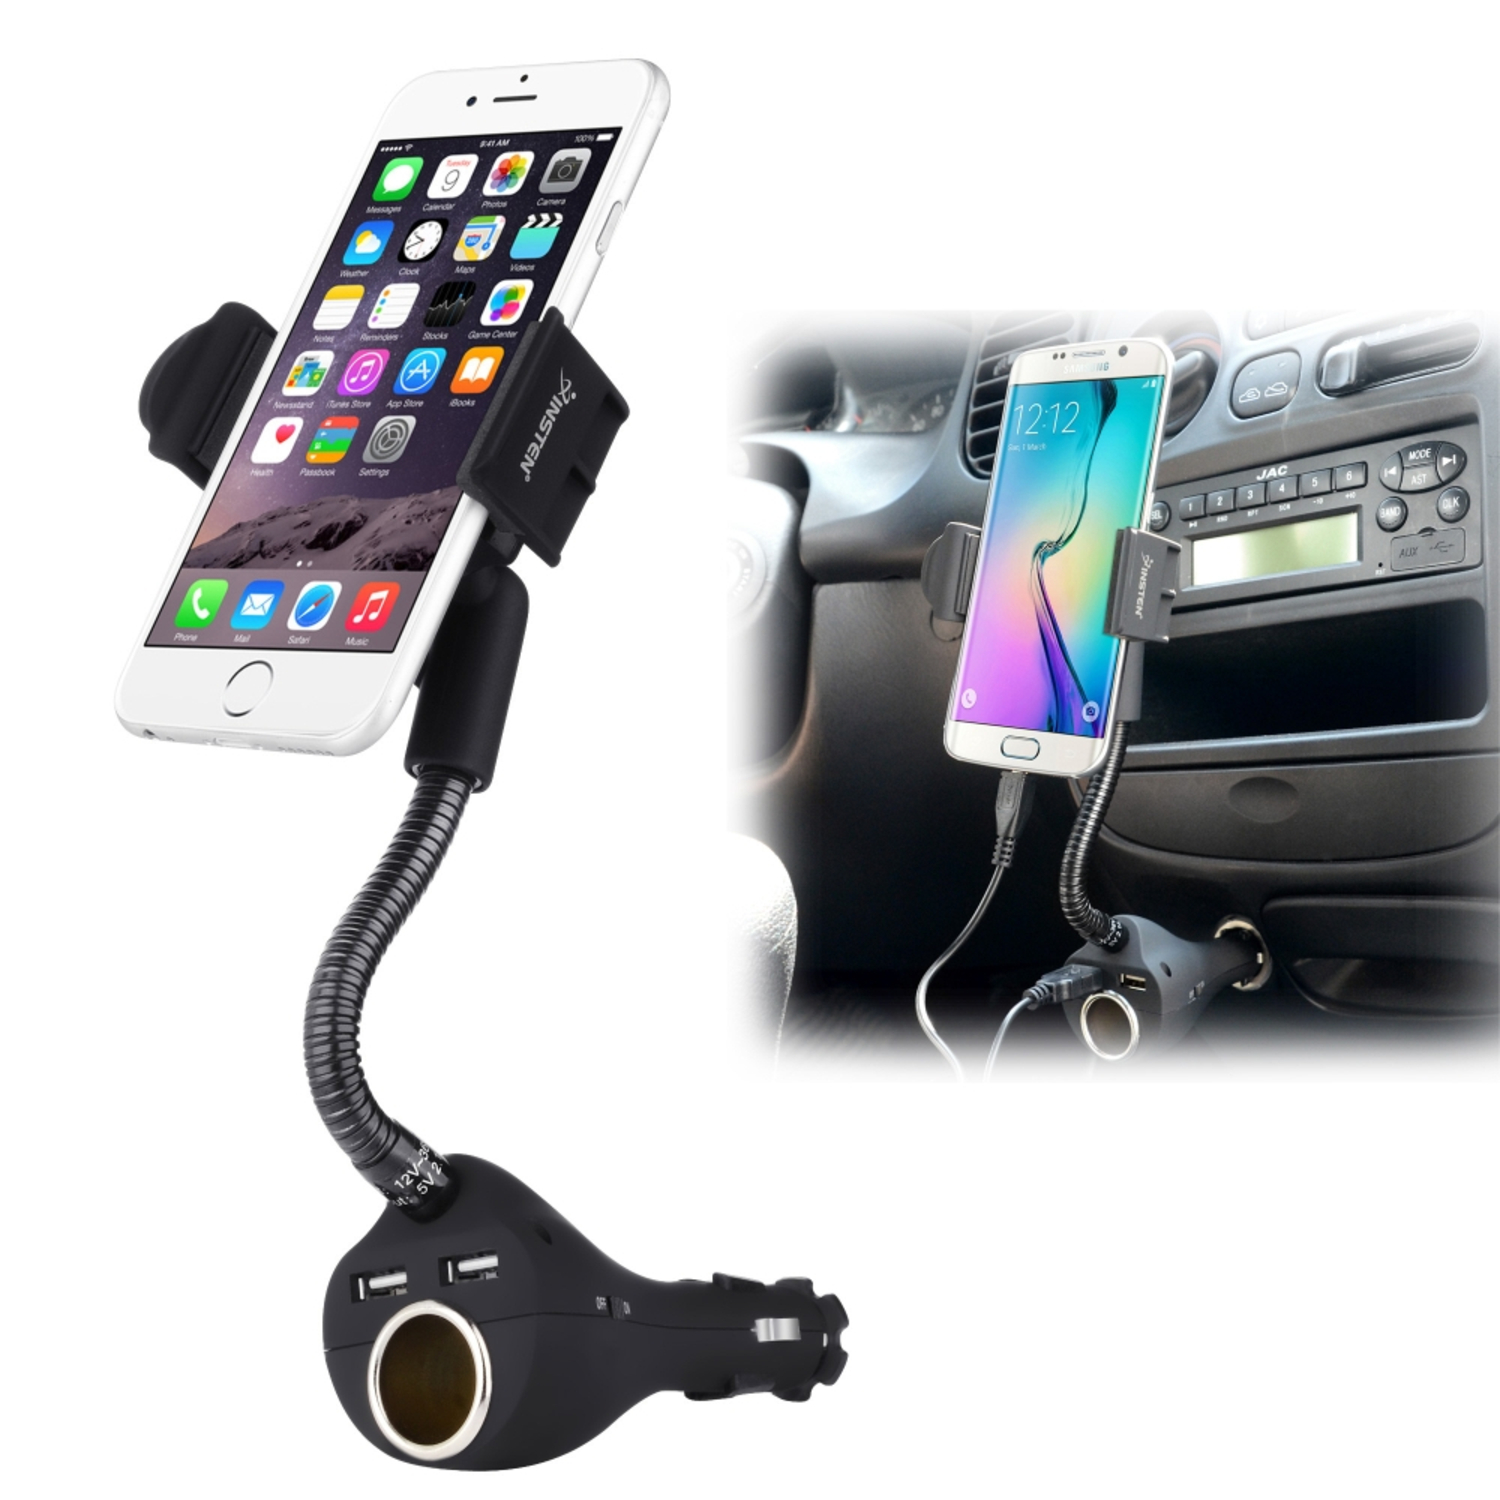 Insten Car Mount Phone Holder with 2-Port USB Charger & Socket For iPhone 7 6S 6 Plus SE 5S iPod Touch  Samsung Galaxy... by